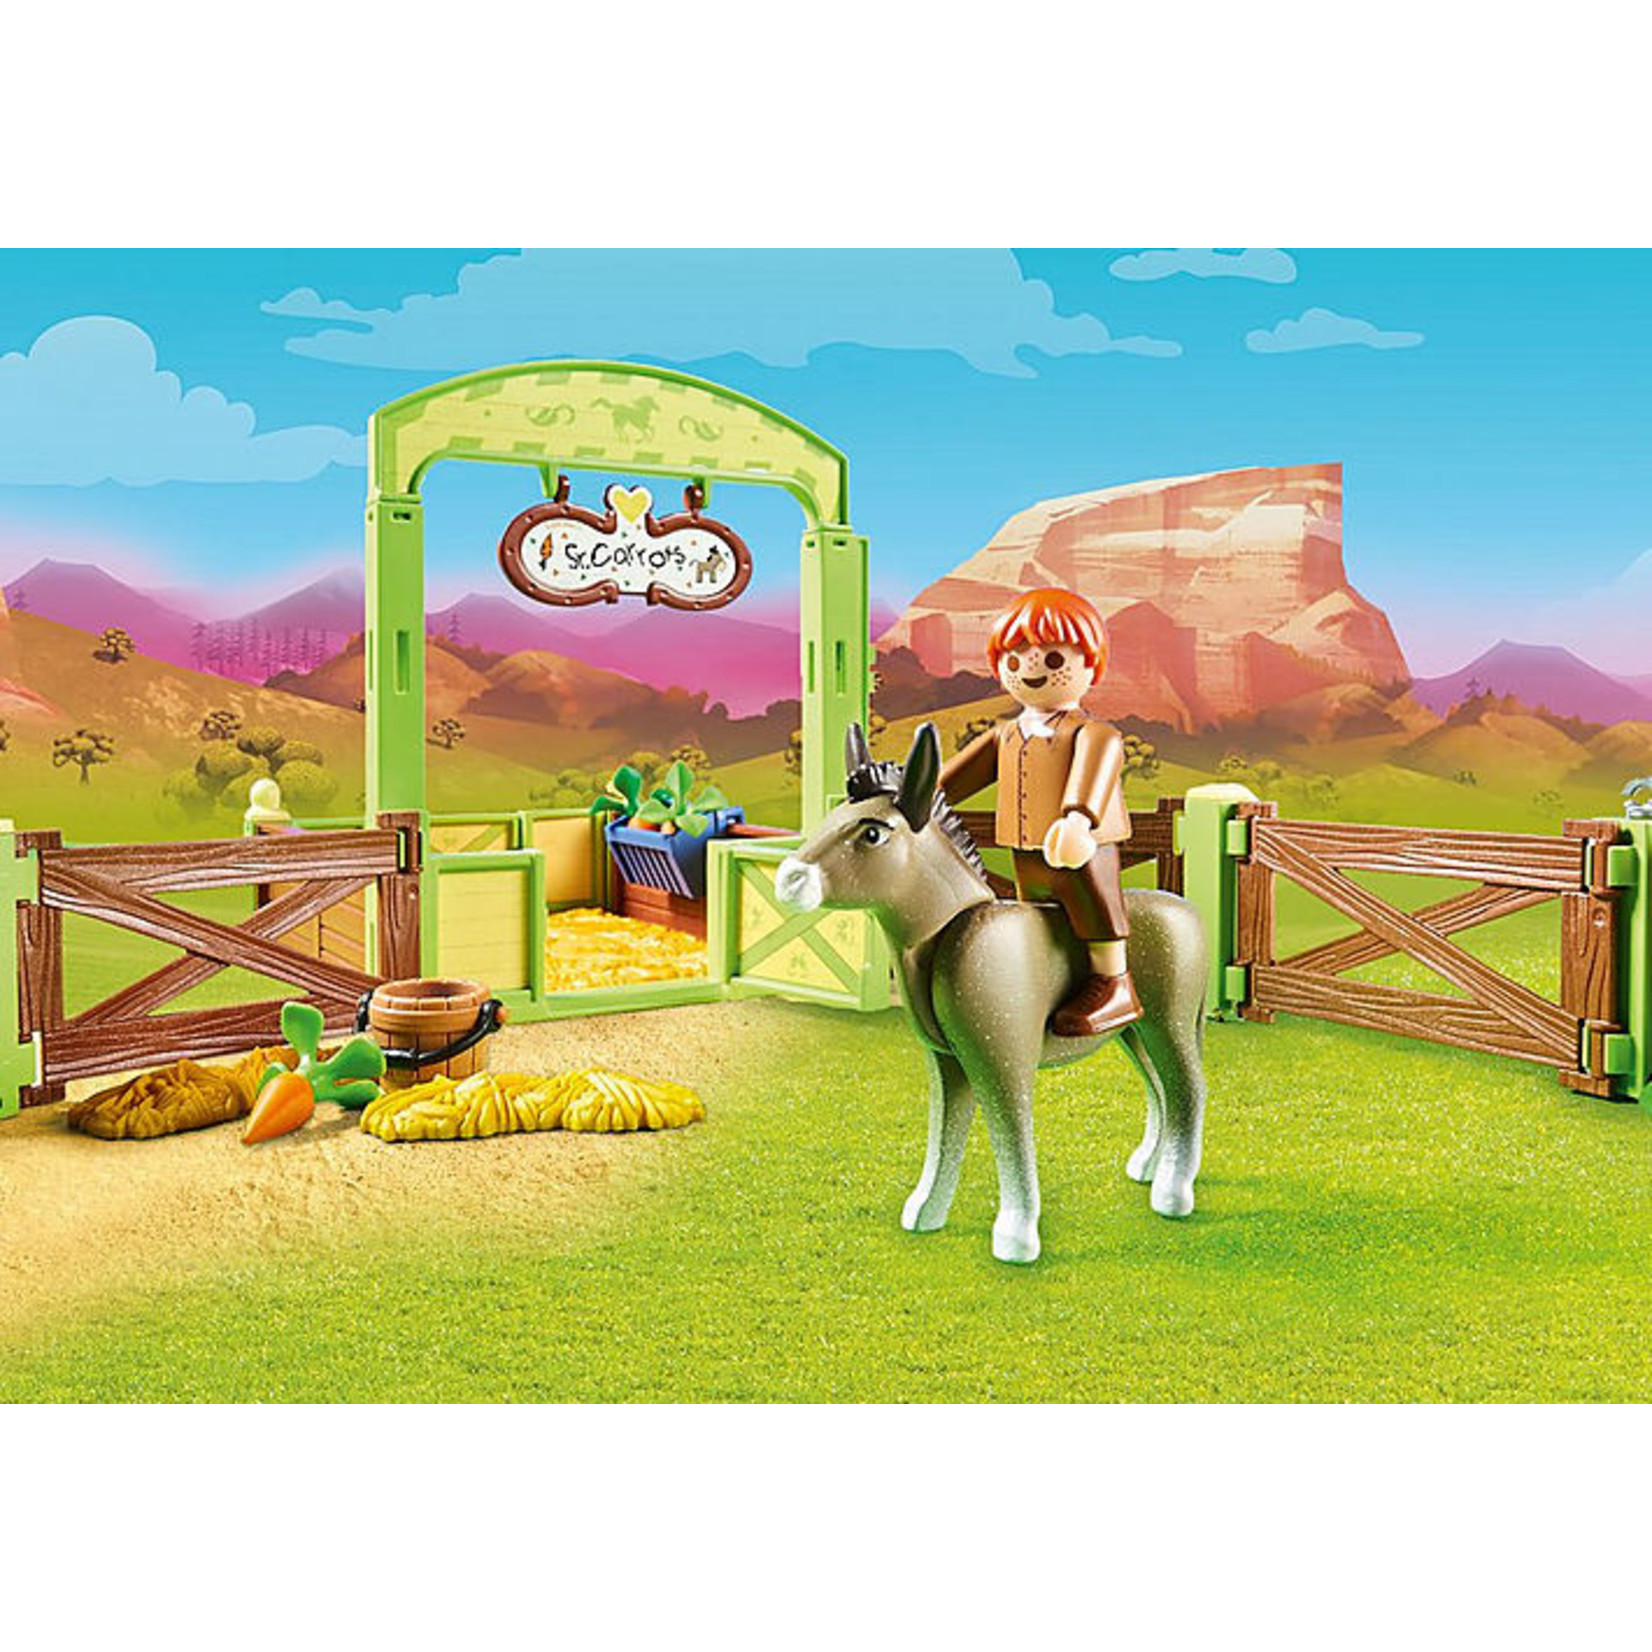 PLAYMOBIL SNIPS AND SENOR CARROTS WITH HORSE STALL